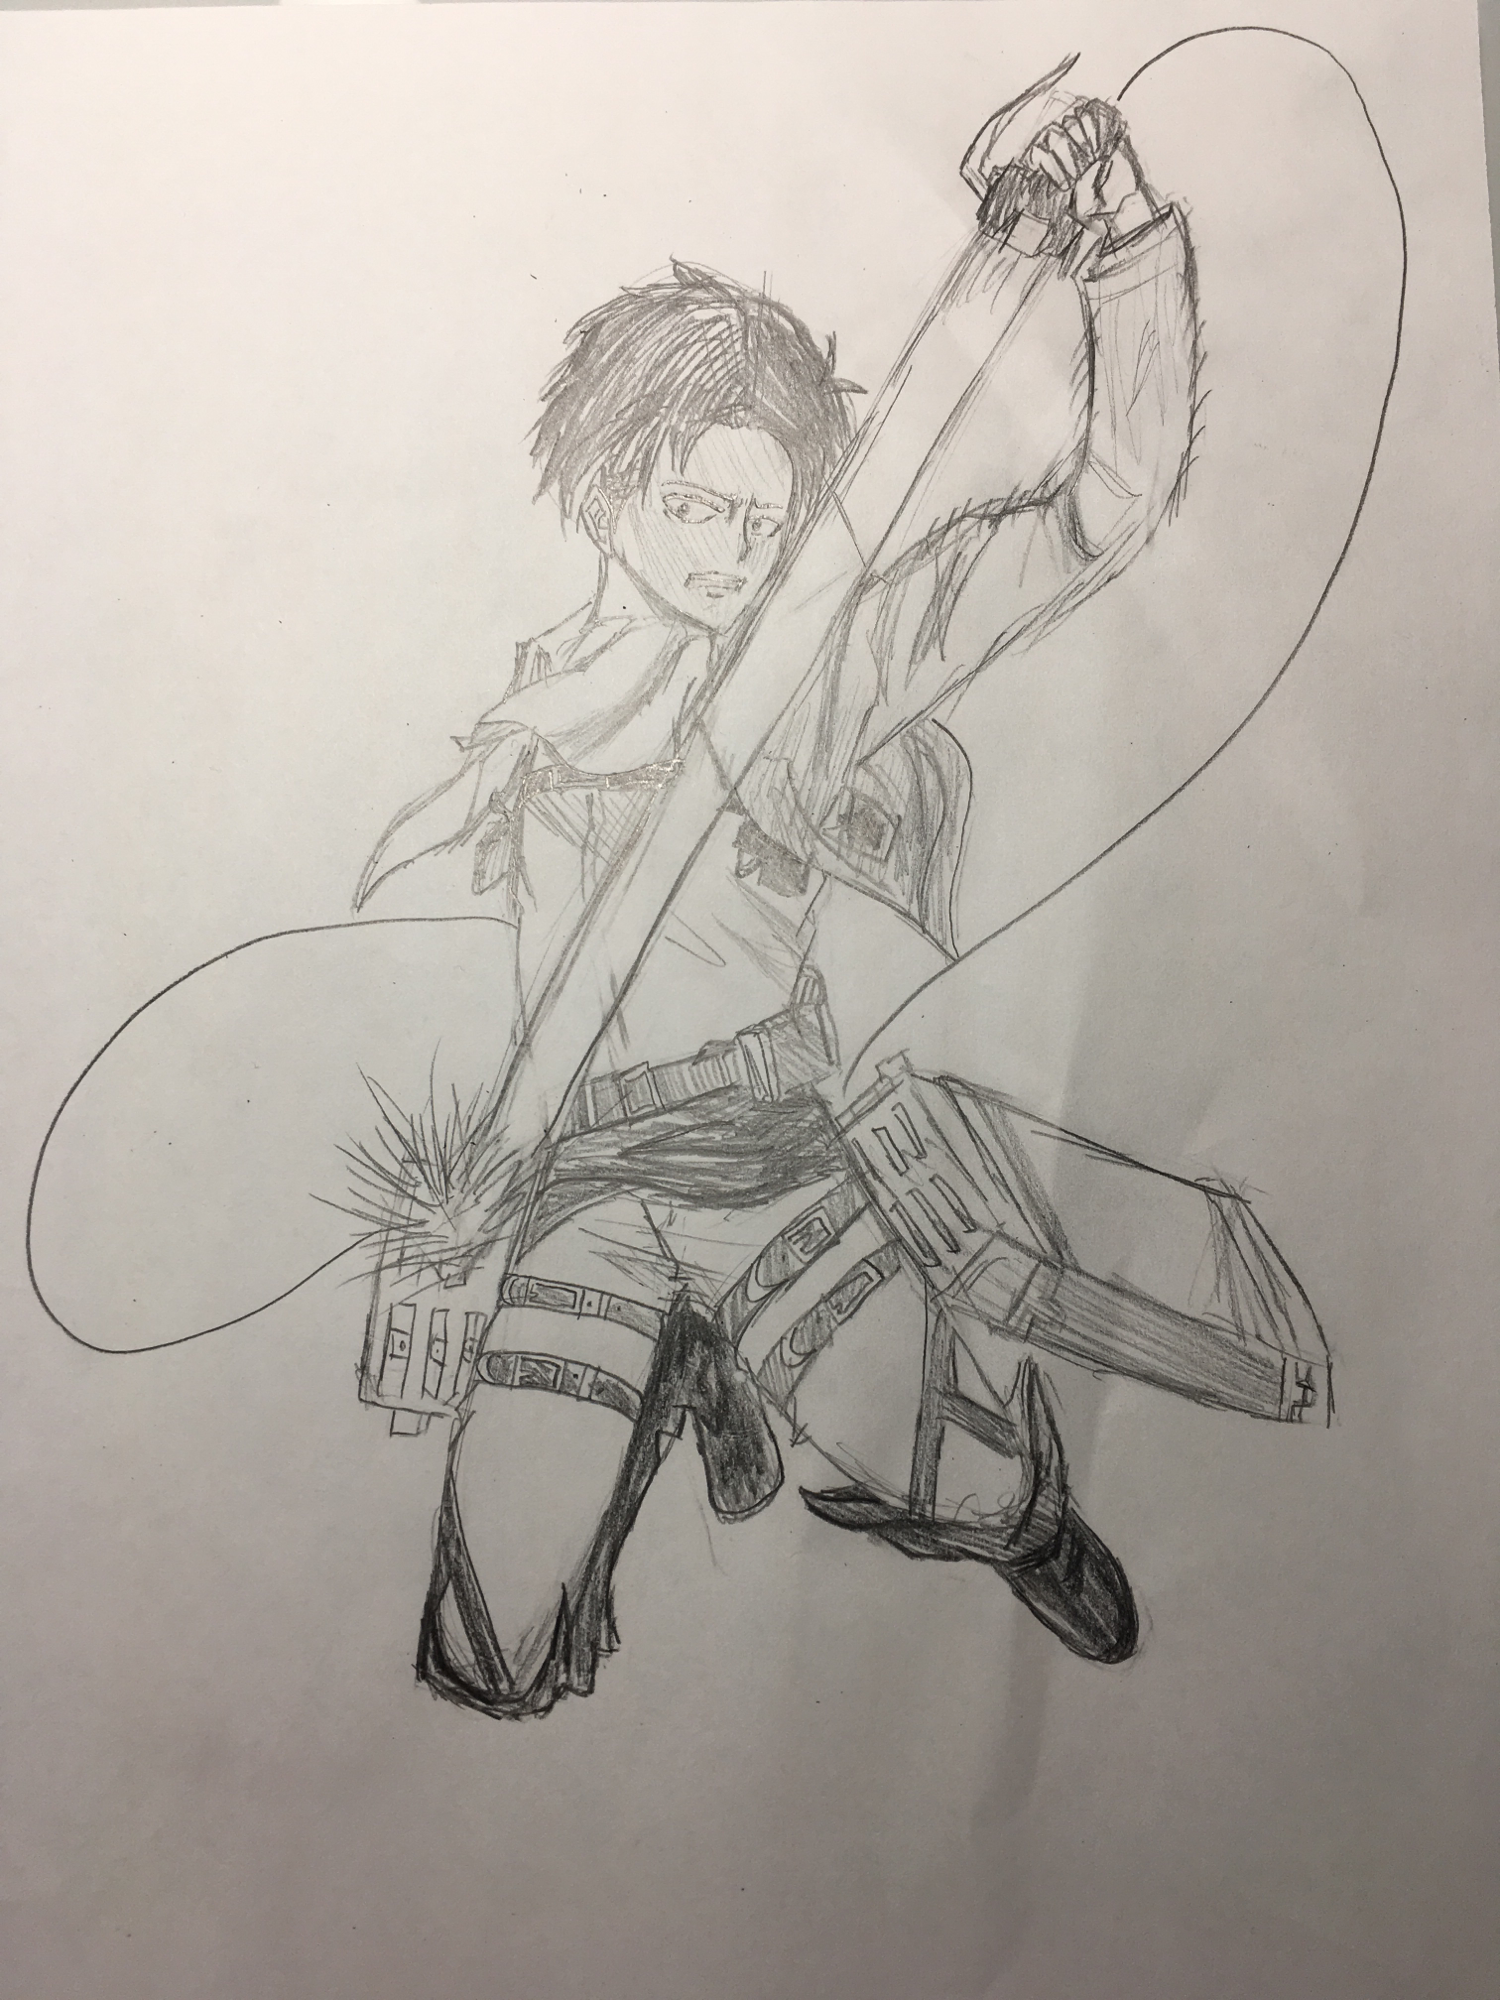 Another drawing of Levi from No Regrets-